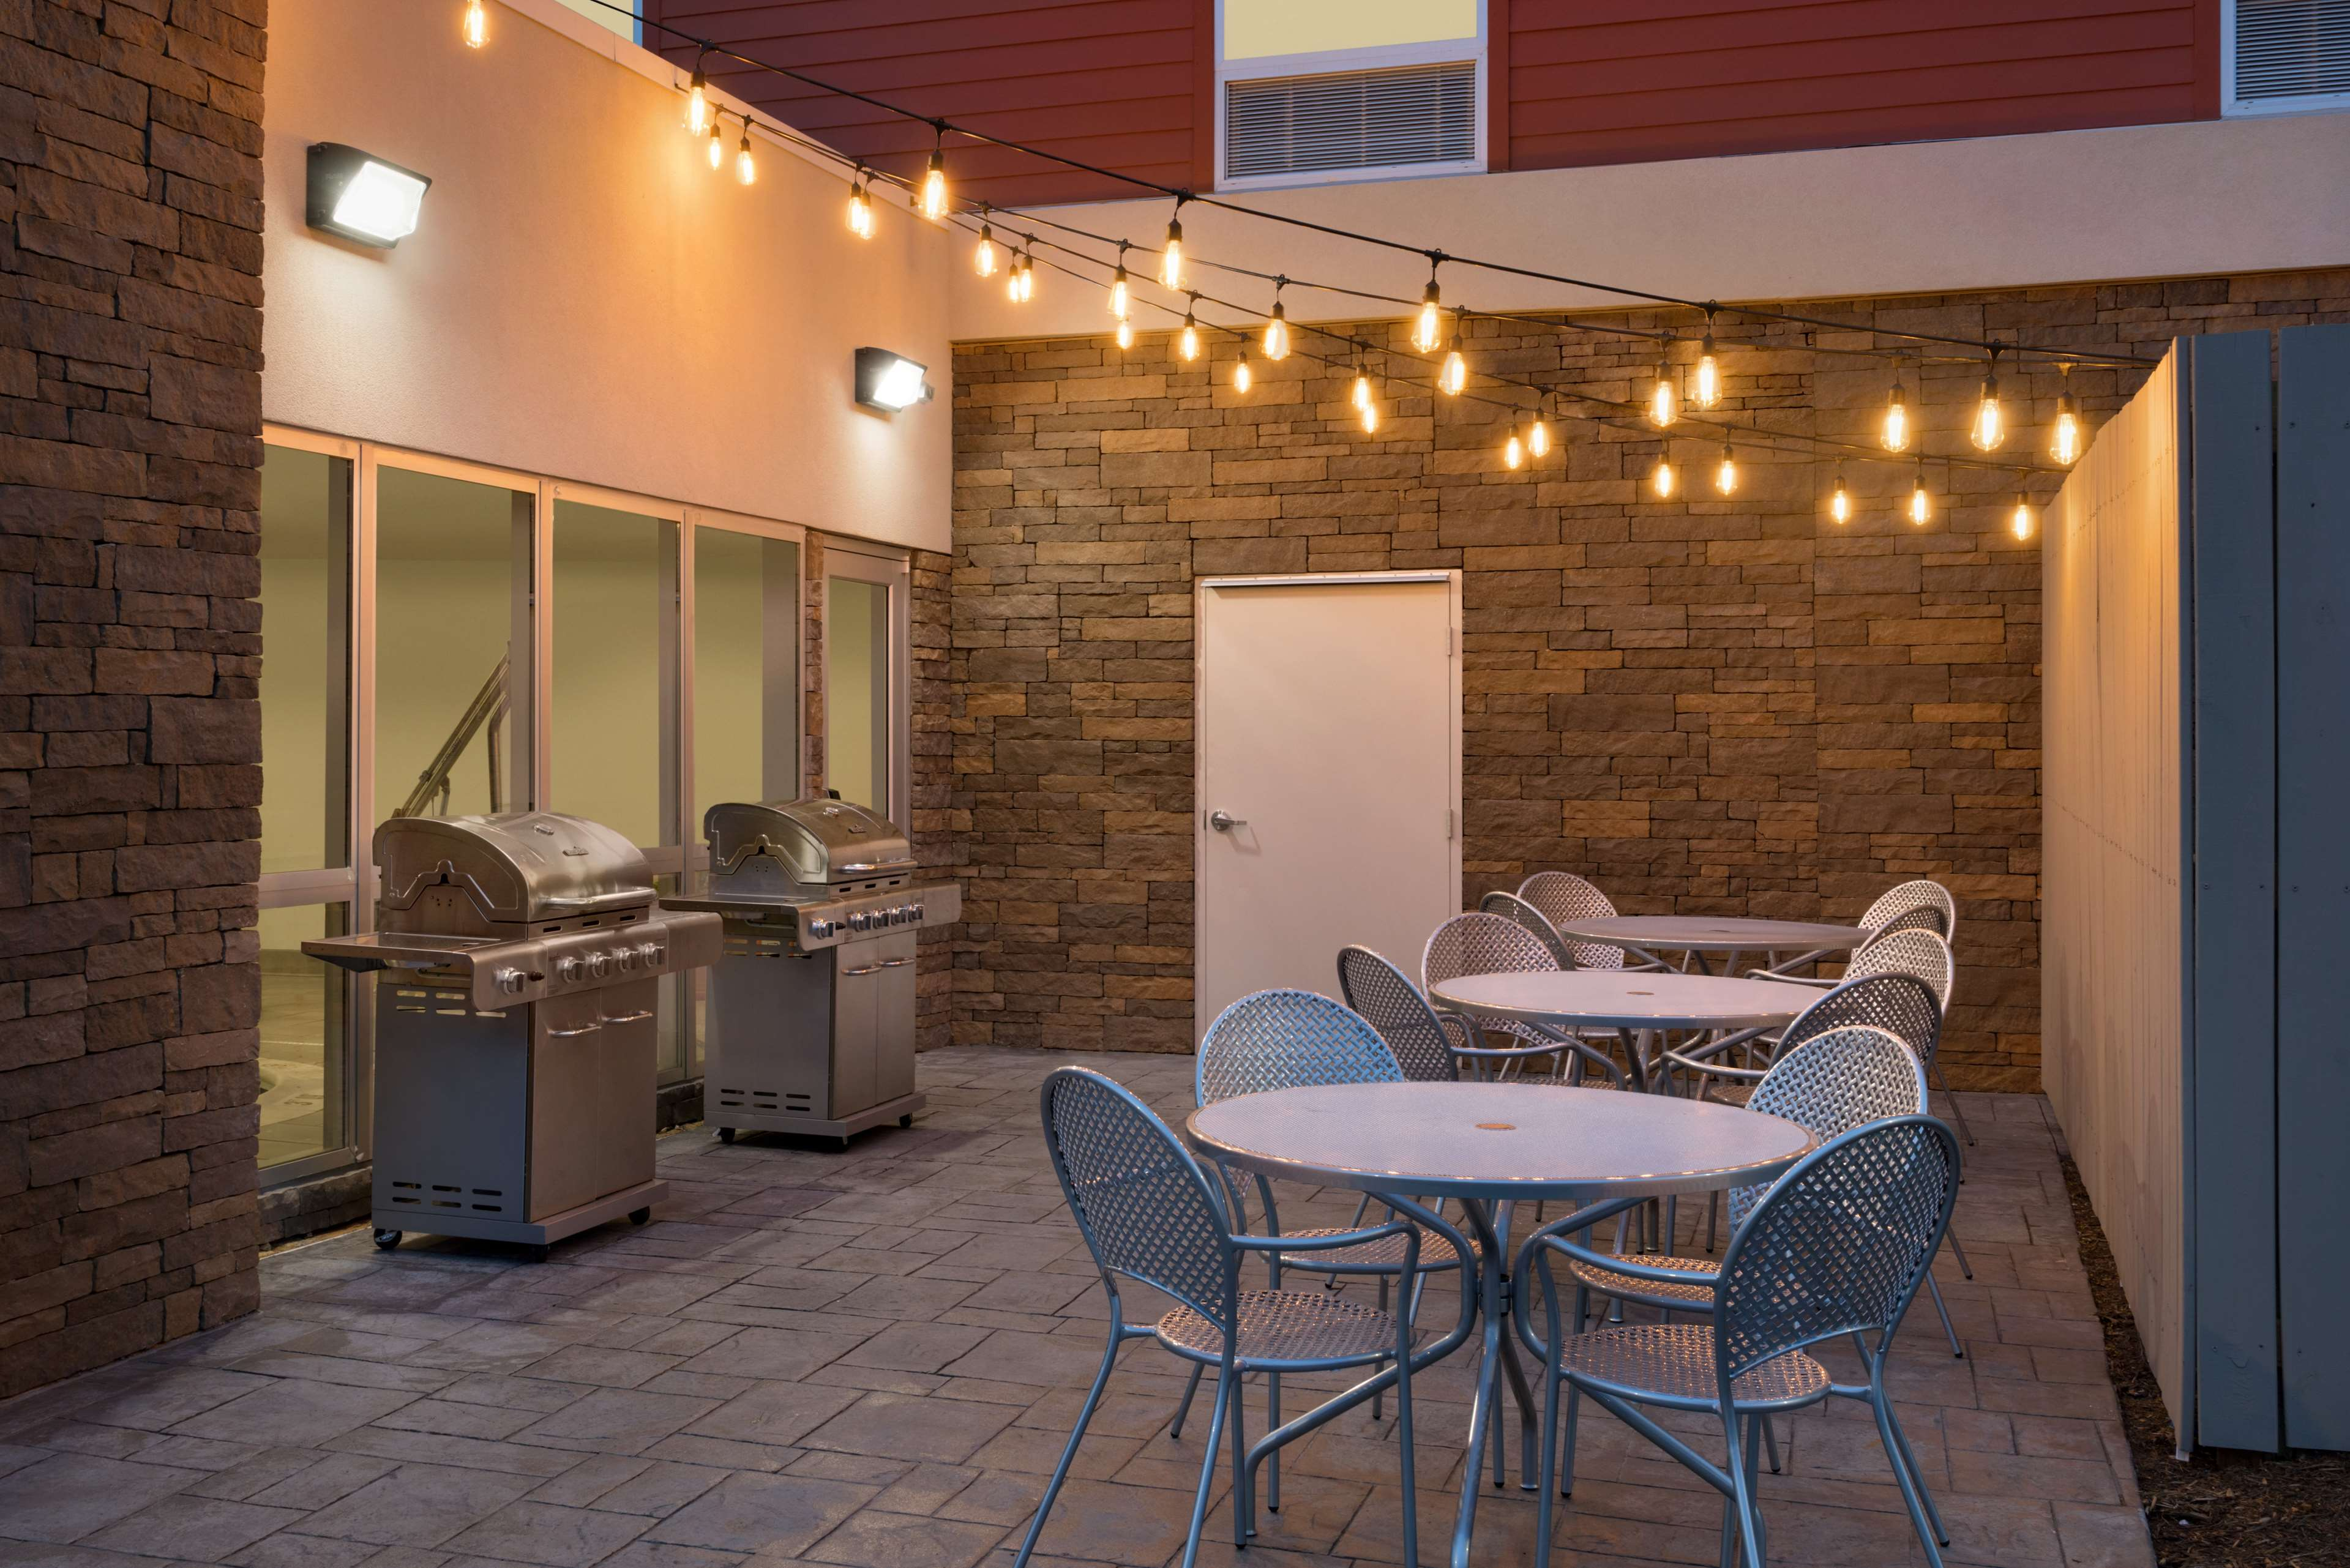 Home2 Suites by Hilton Roanoke image 3